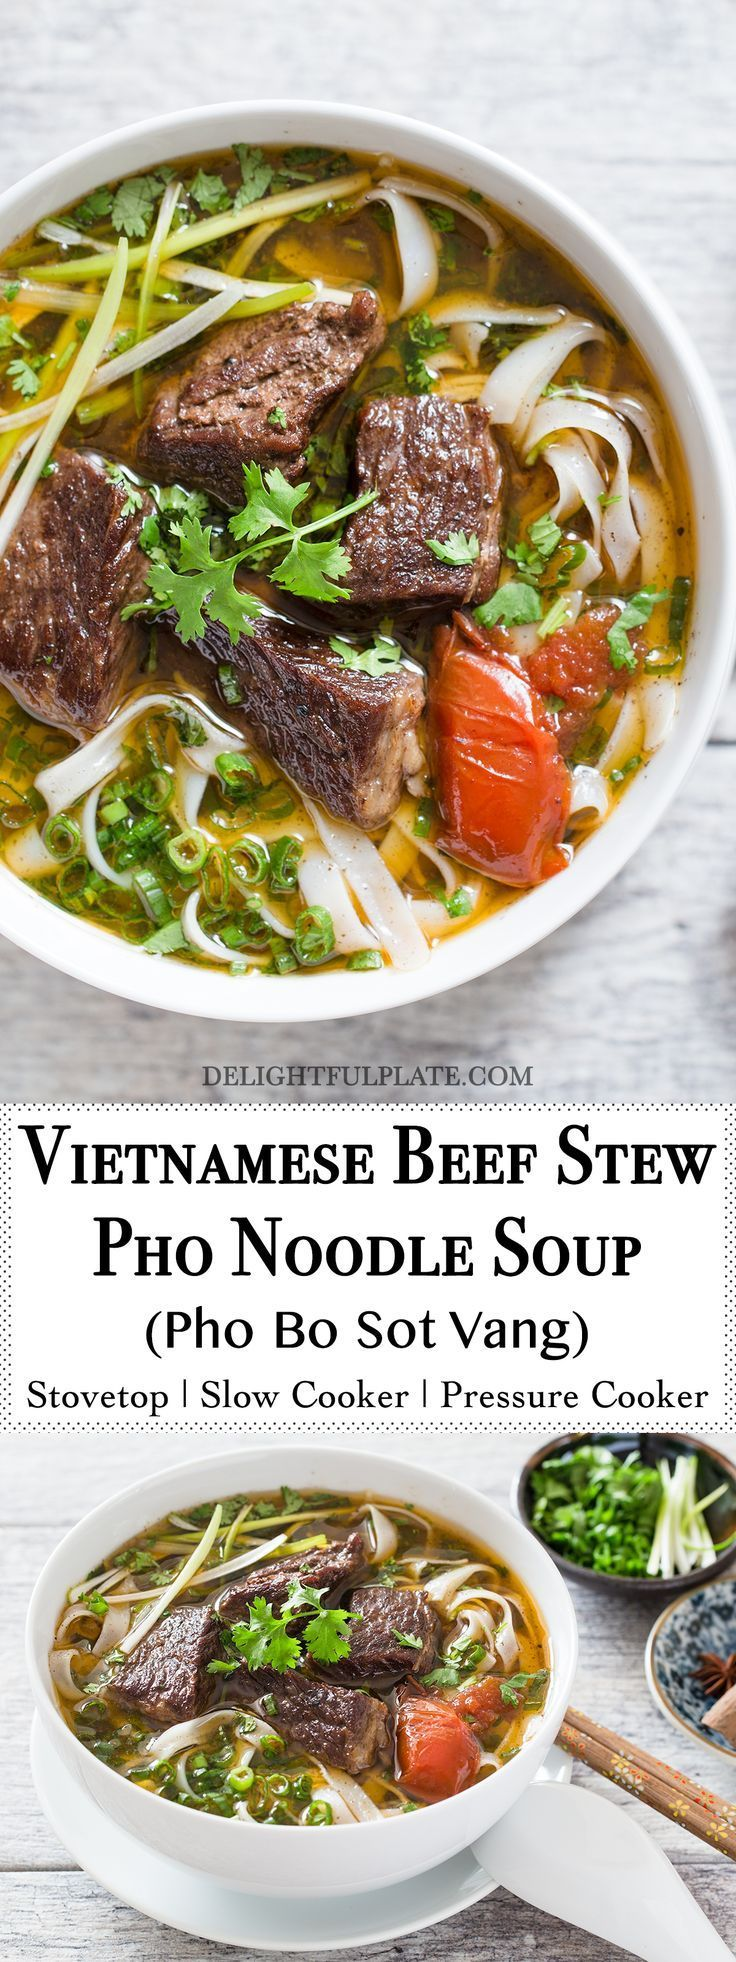 Vietnamese beef stew pho noodle soup (Pho bo sot vang) is a hearty and comforting noodle soup. This noodle soup features tender beef, flavorful broth and amazing aroma from pho spices. You can make it on the stovetop, in a slow cooker or even in a pressure cooker. #vietnamese #noodle